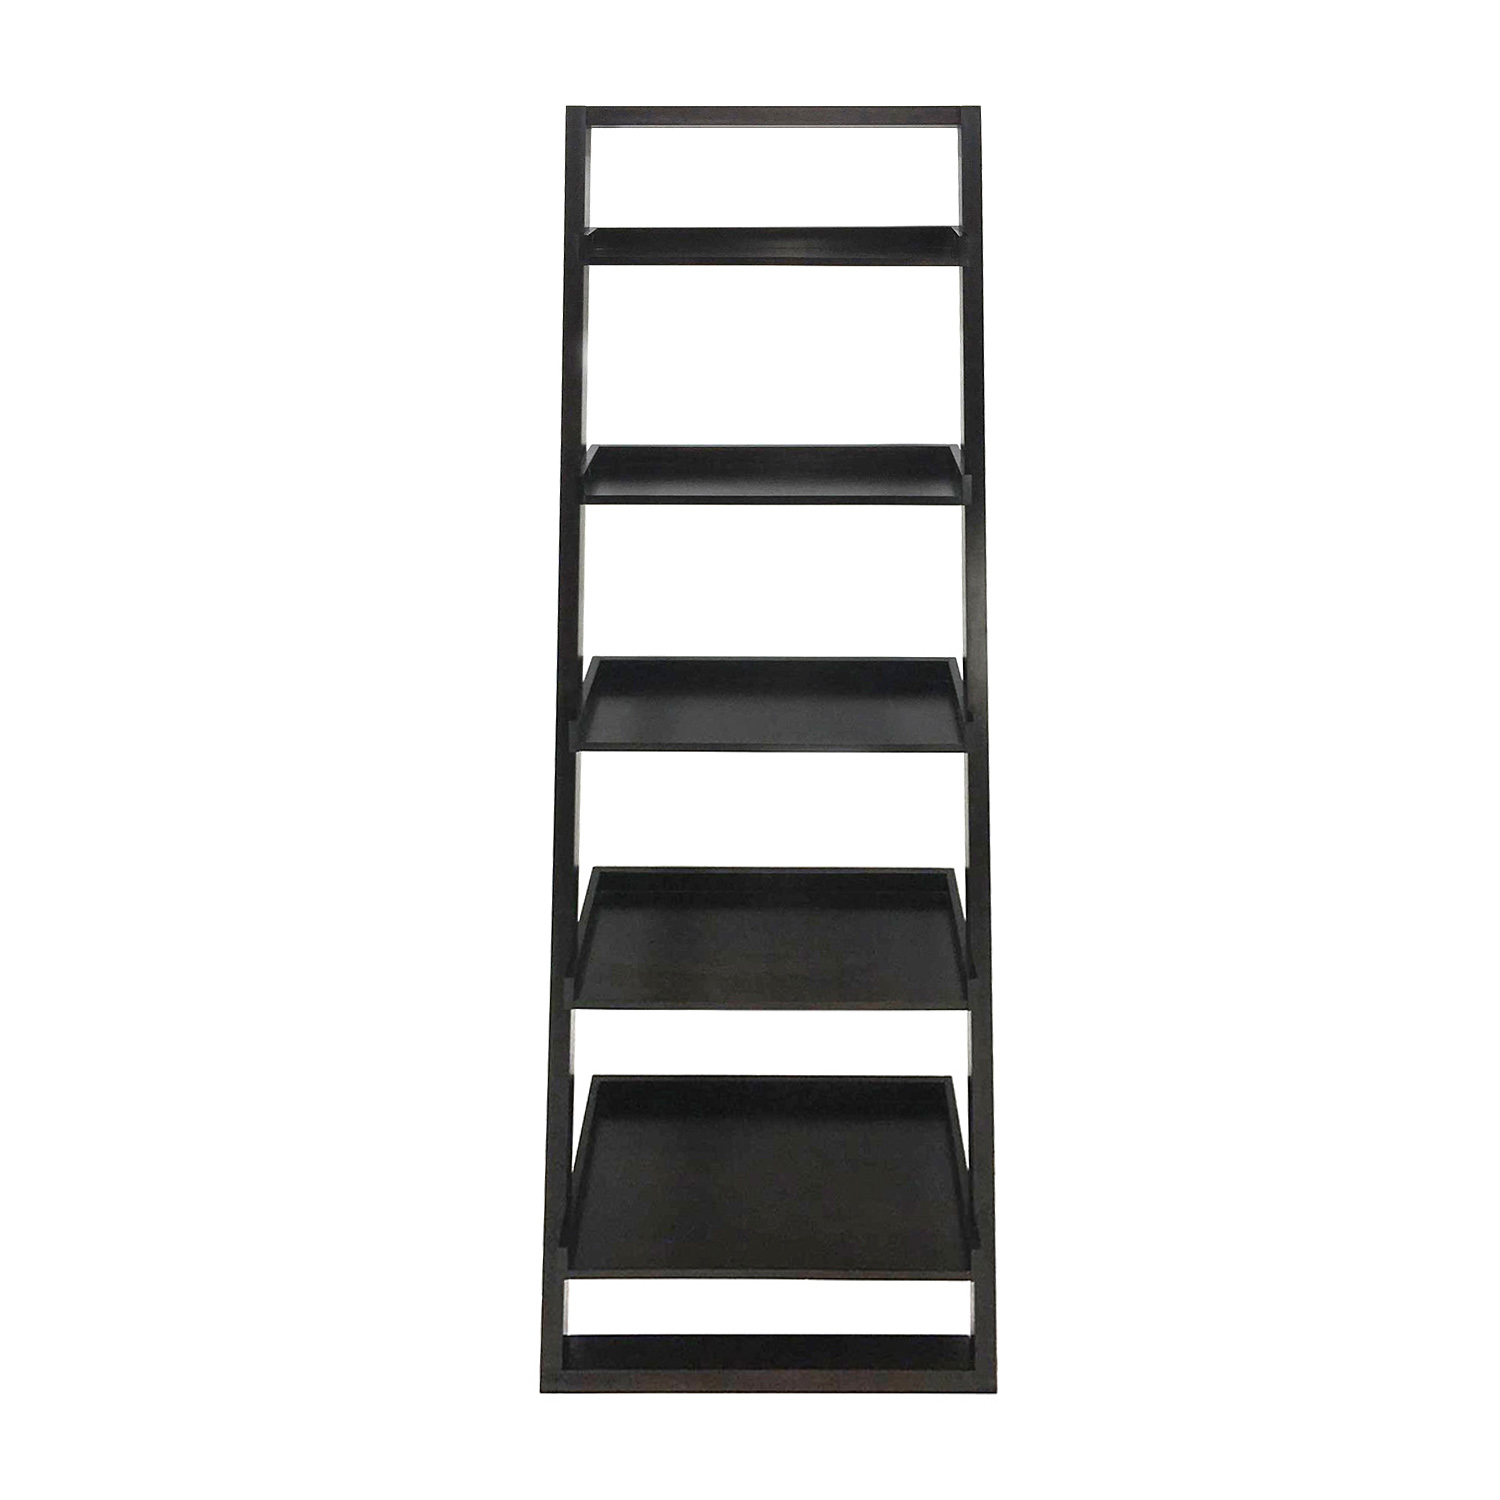 Crate and Barrel Crate & Barrel Wide Leaning Shelves nj